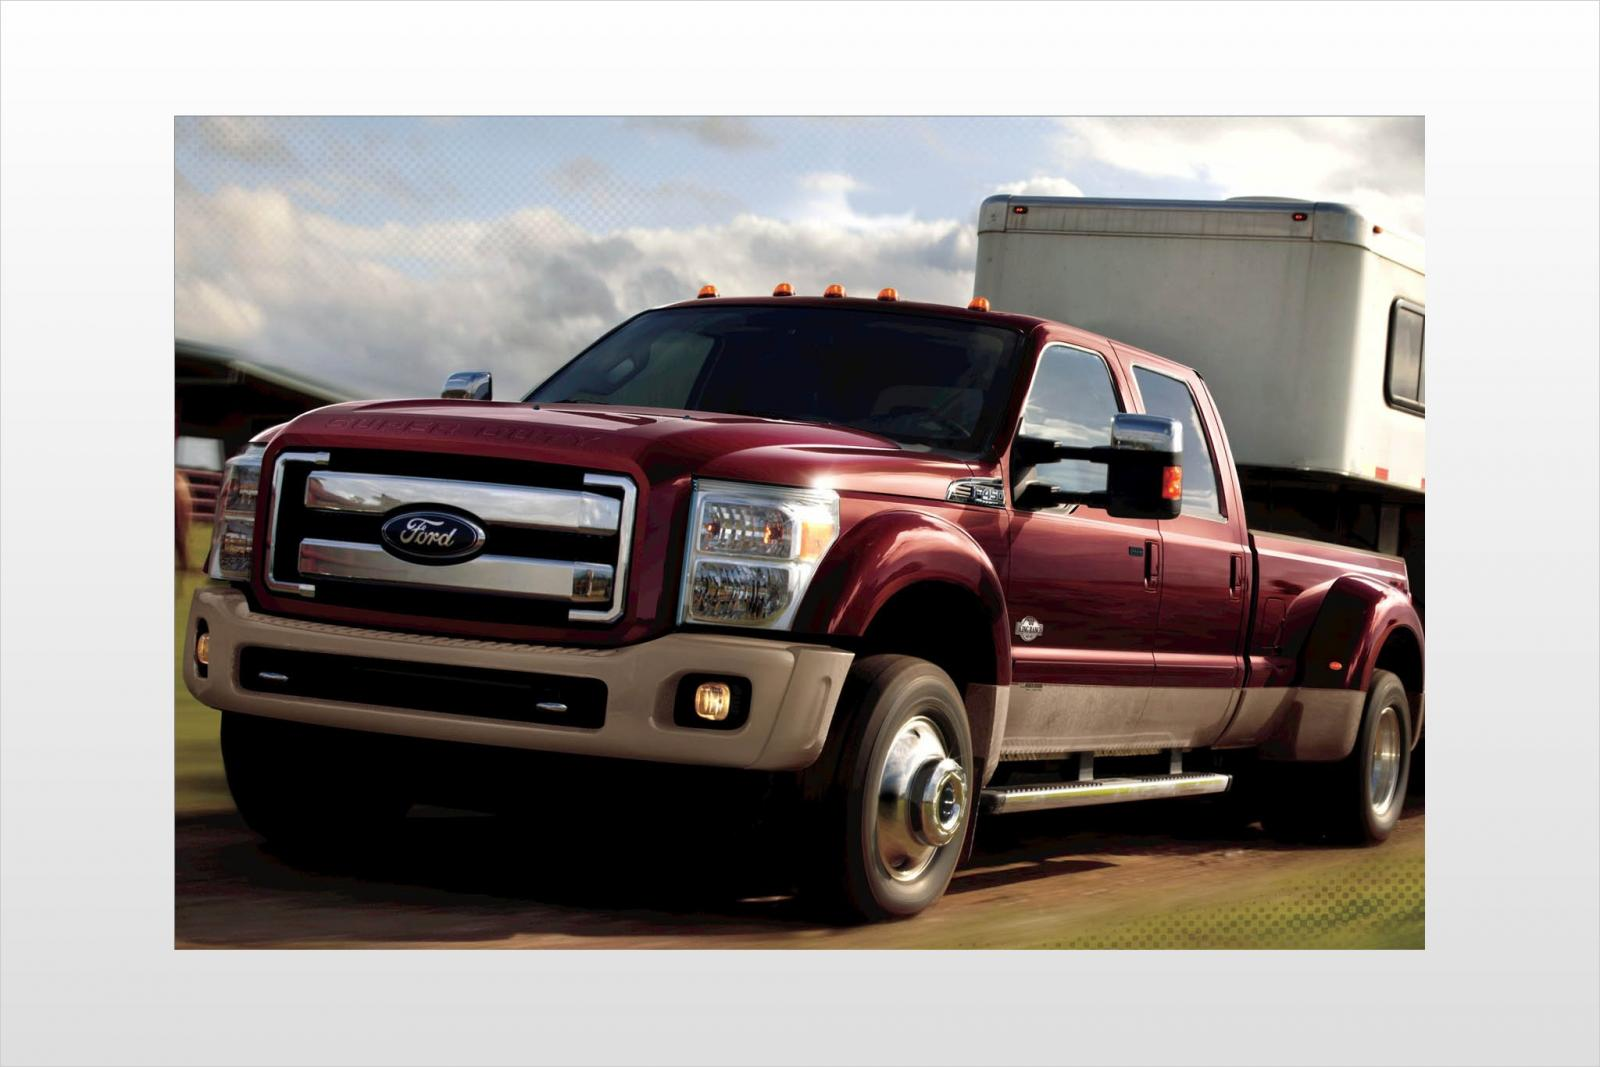 2012 ford f 450 super duty information and photos zombiedrive. Black Bedroom Furniture Sets. Home Design Ideas